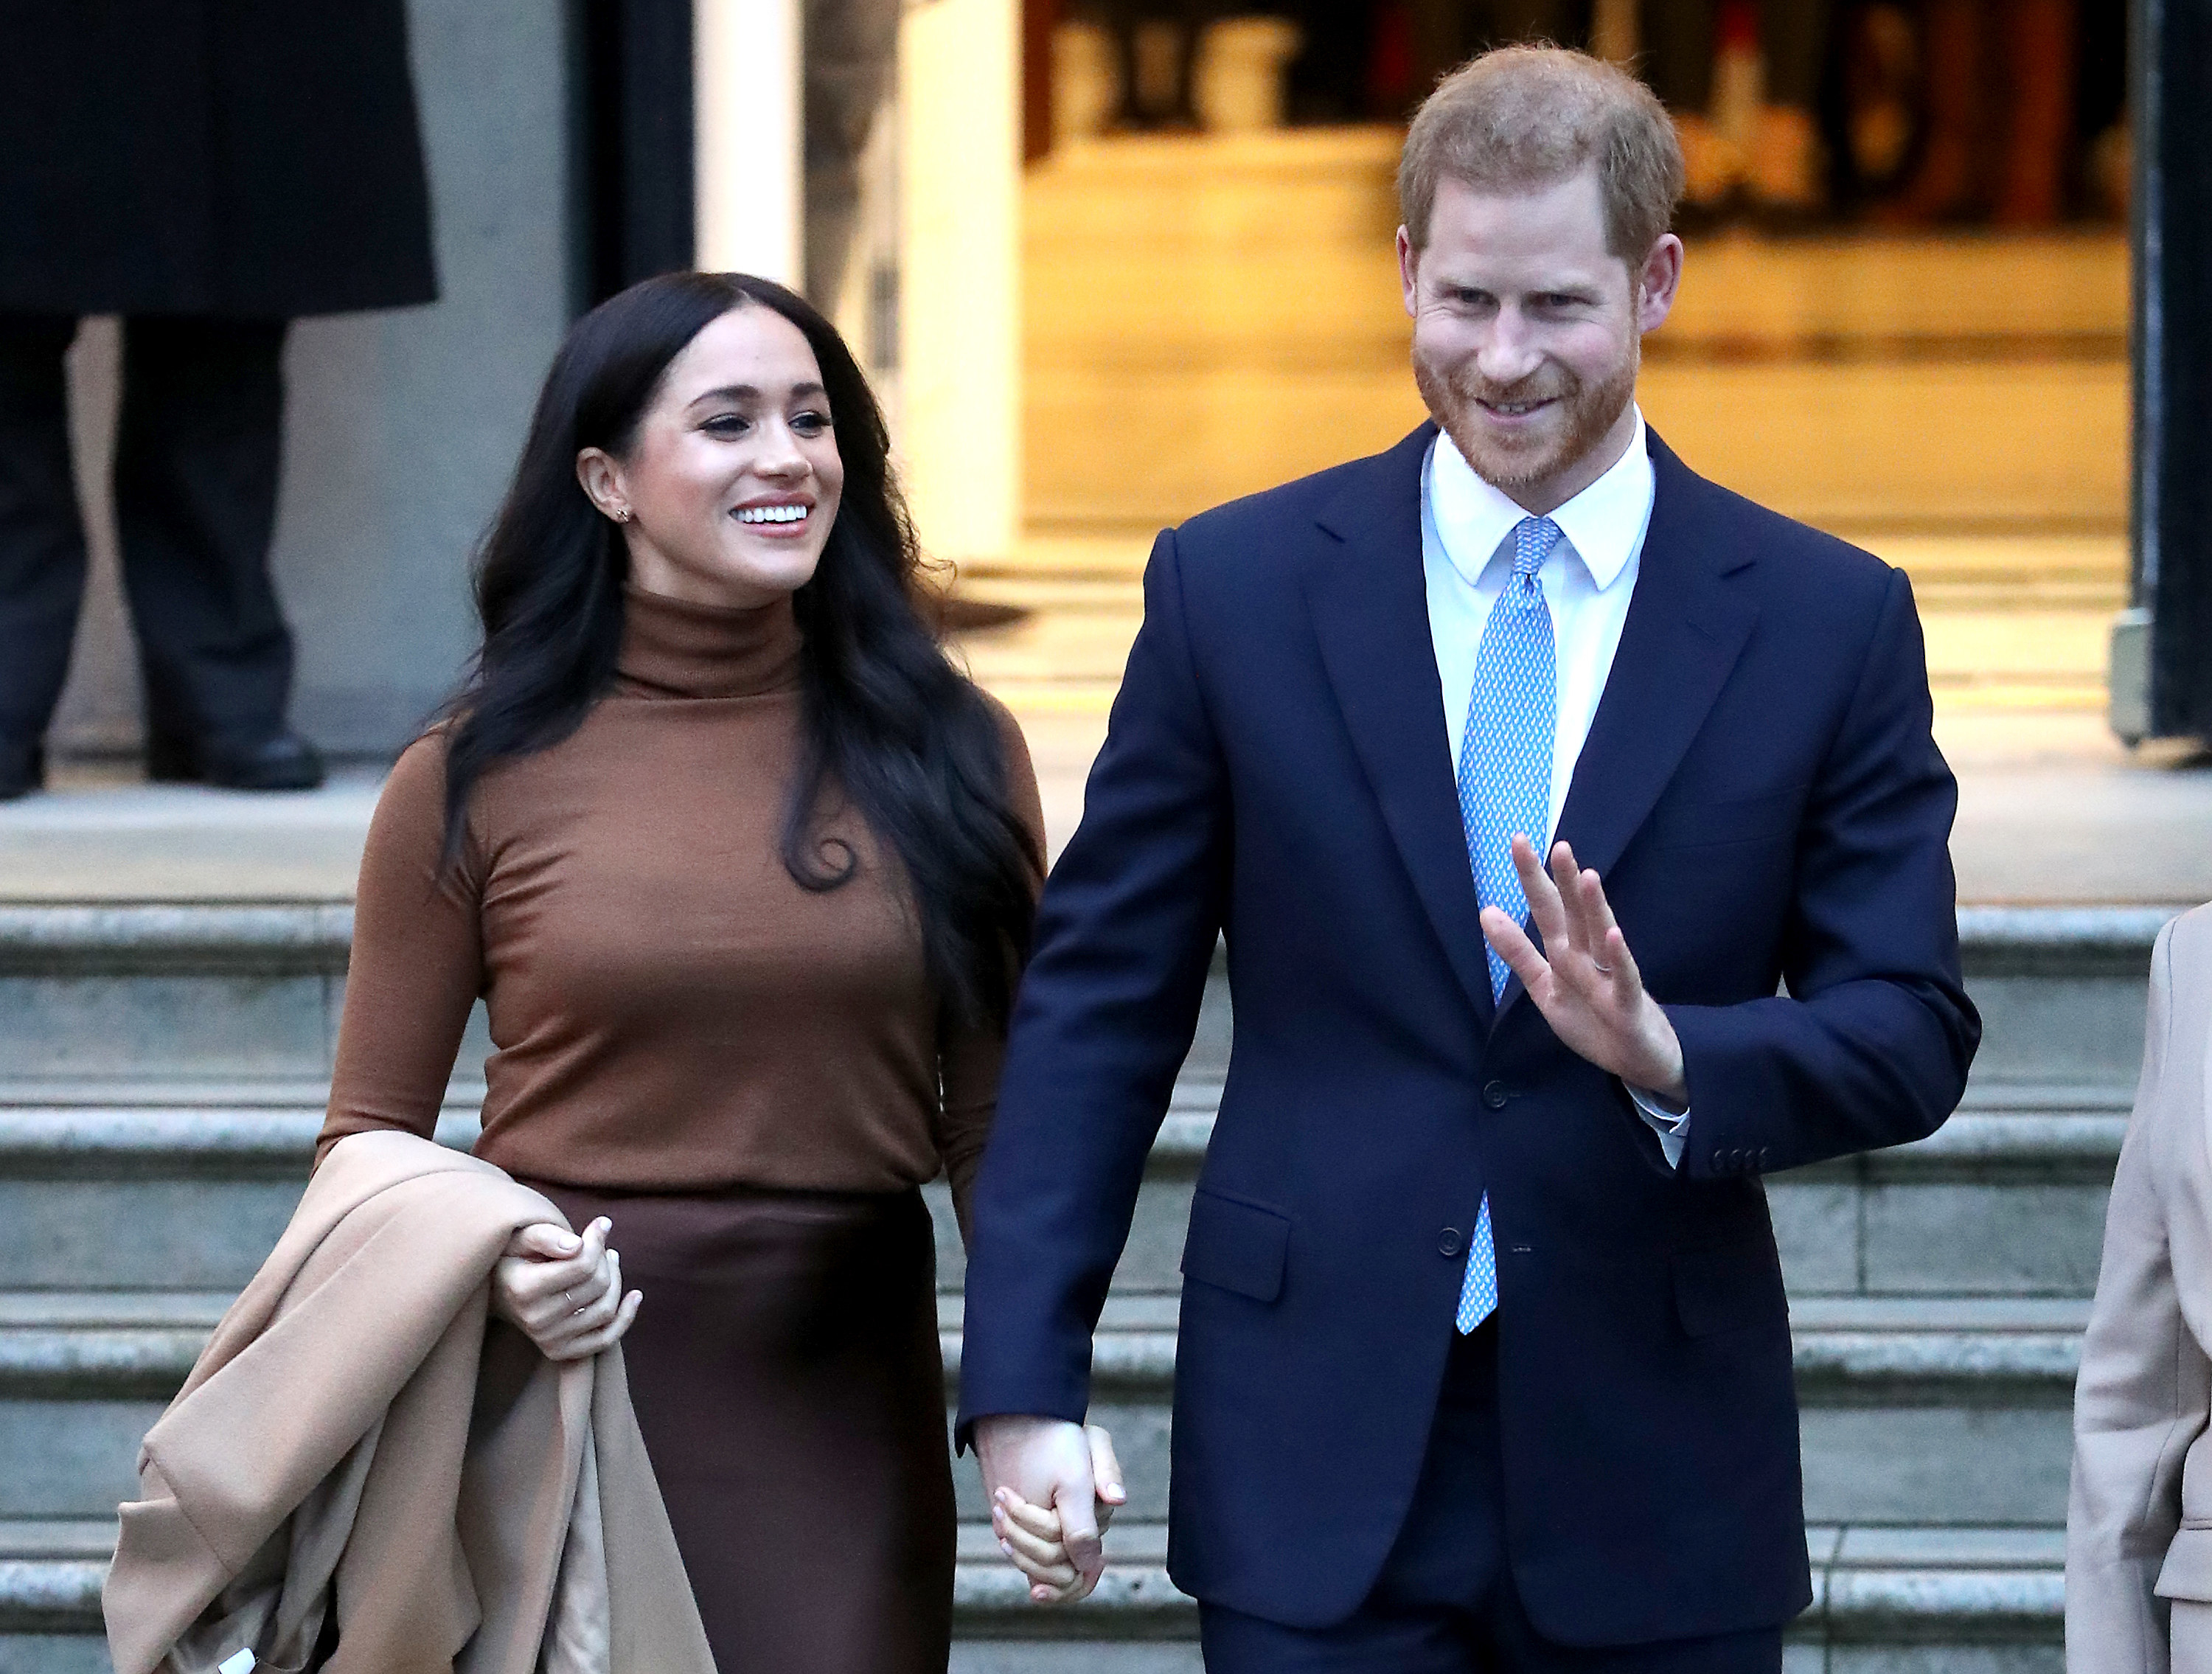 Prince Harry waves while leaving a building with Meghan